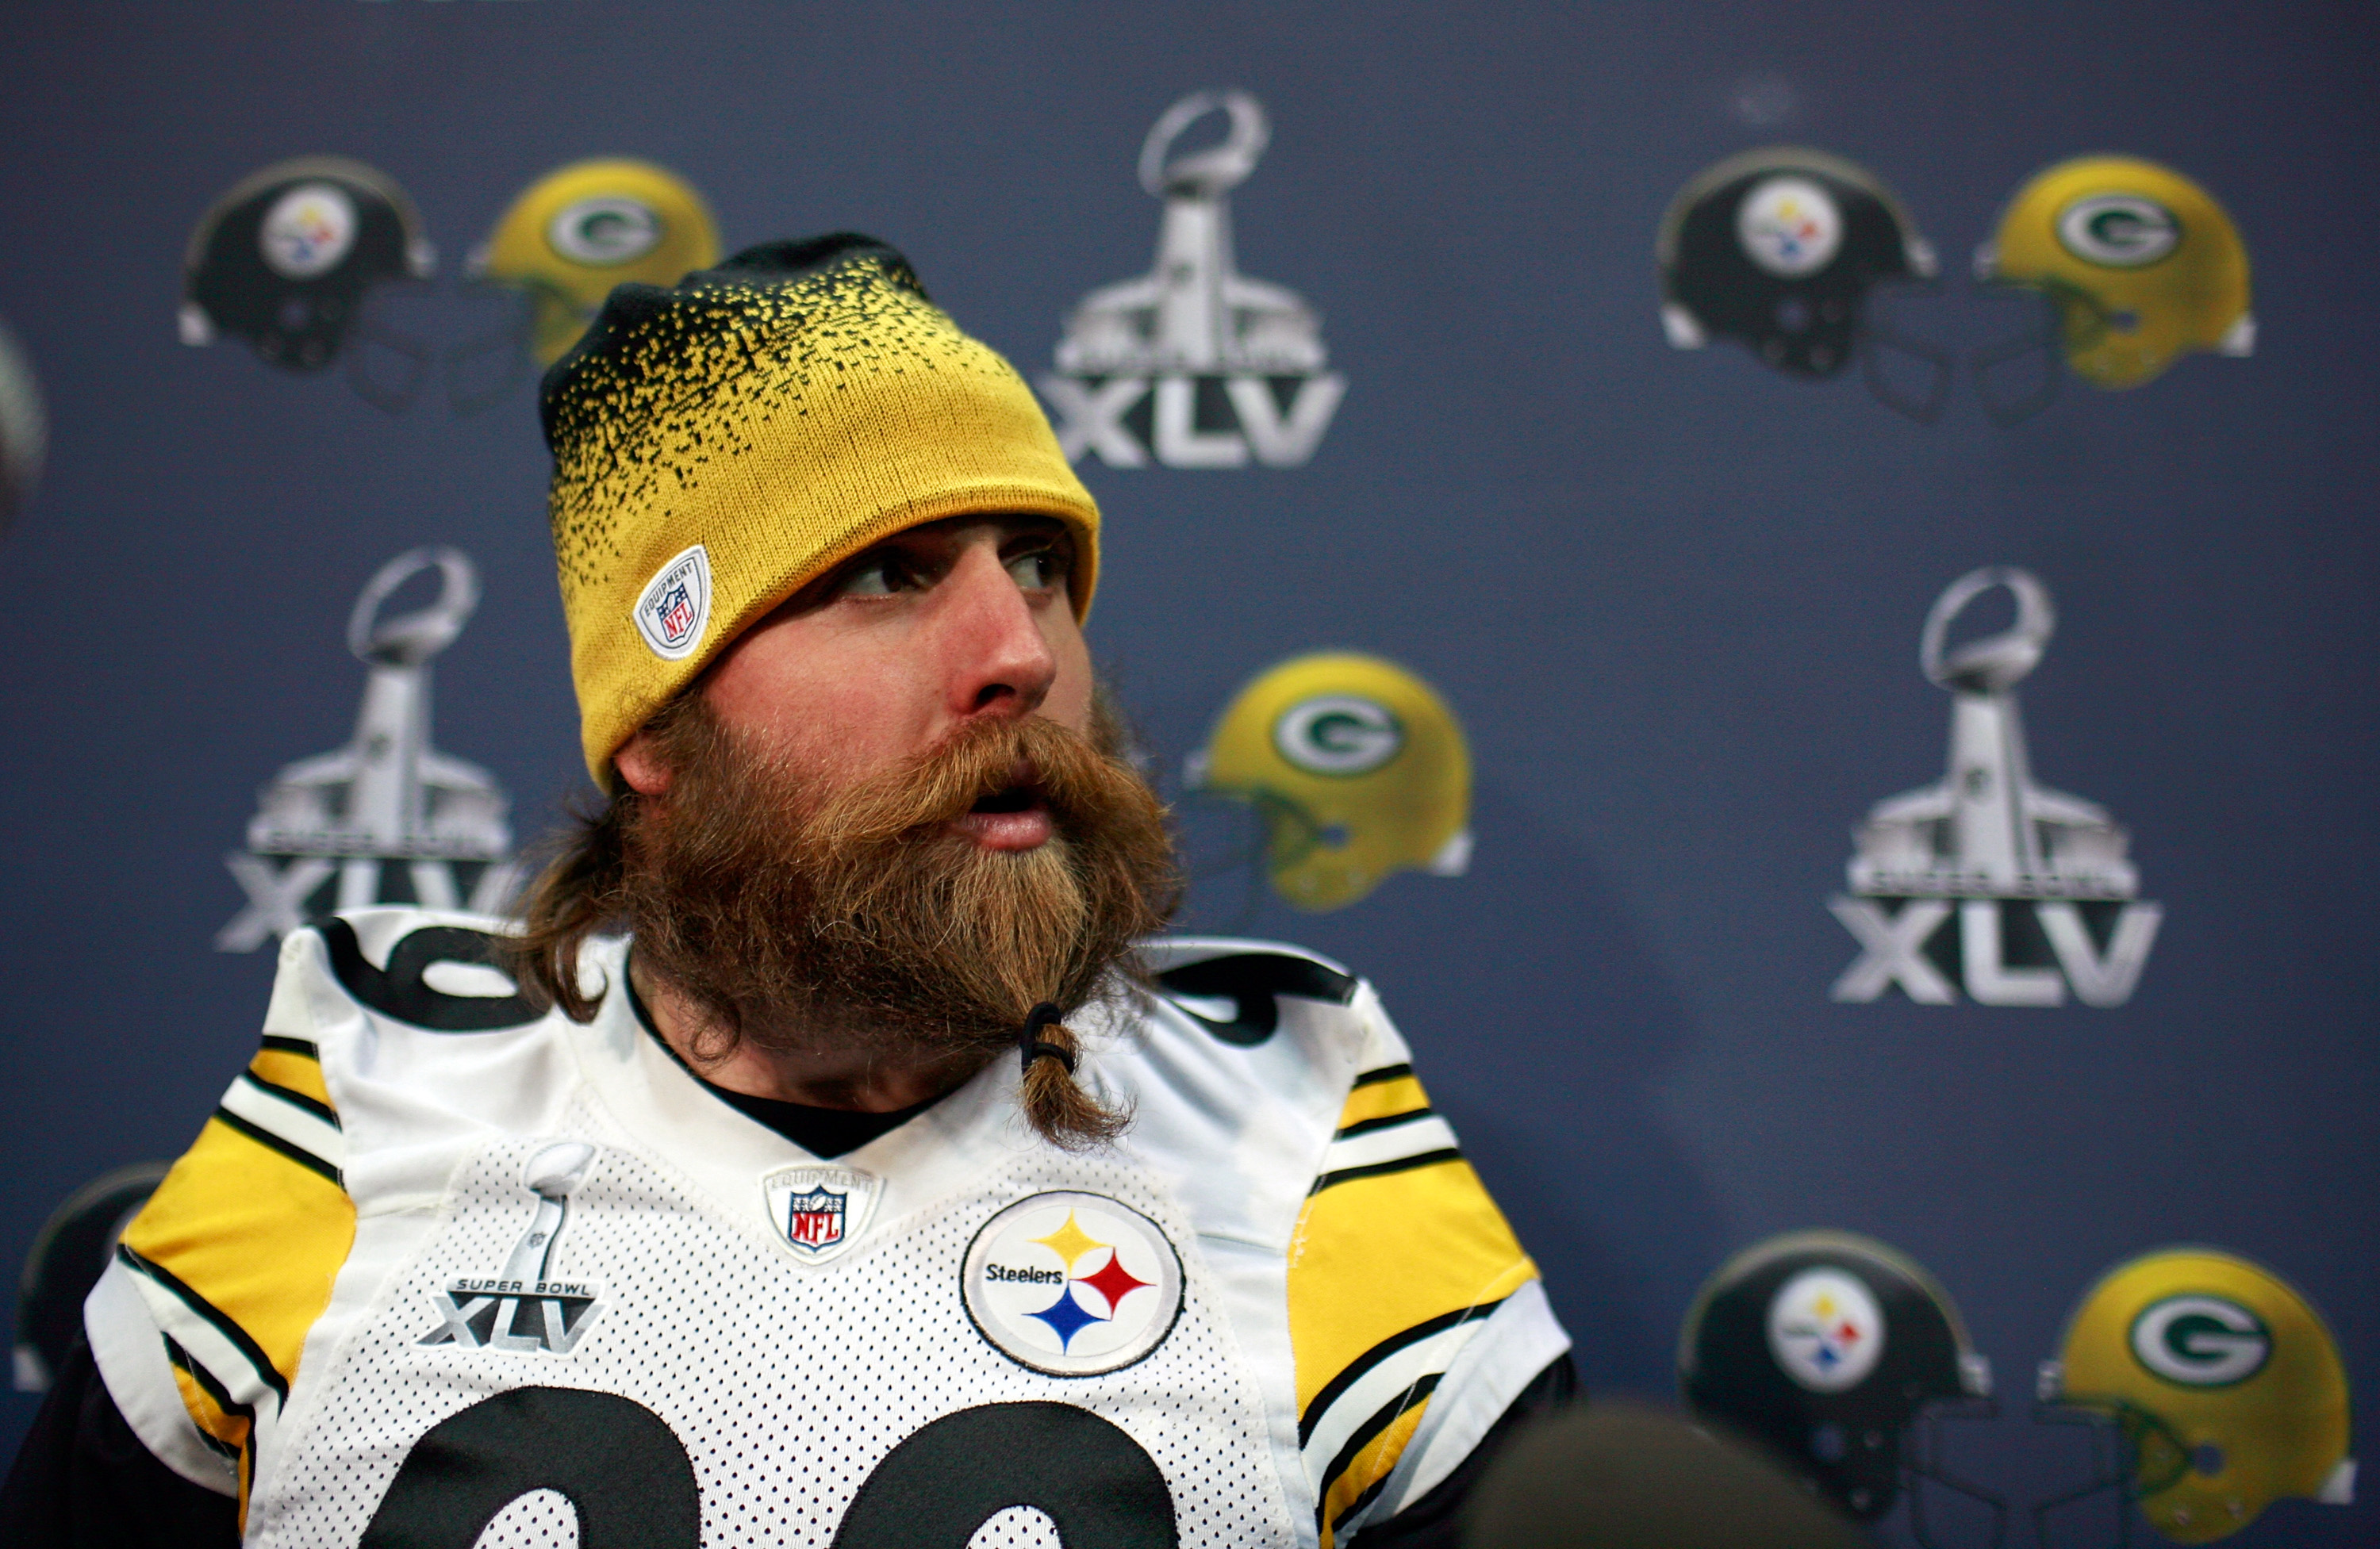 FORT WORTH, TX - FEBRUARY 02:  Defensive end Brett Keisel #99 of the Pittsburgh Steelers gathers his beard in an elastic hairband while talking with the media on February 2, 2011 in Fort Worth, Texas. The Pittsburgh Steelers will play the Green Bay Packer